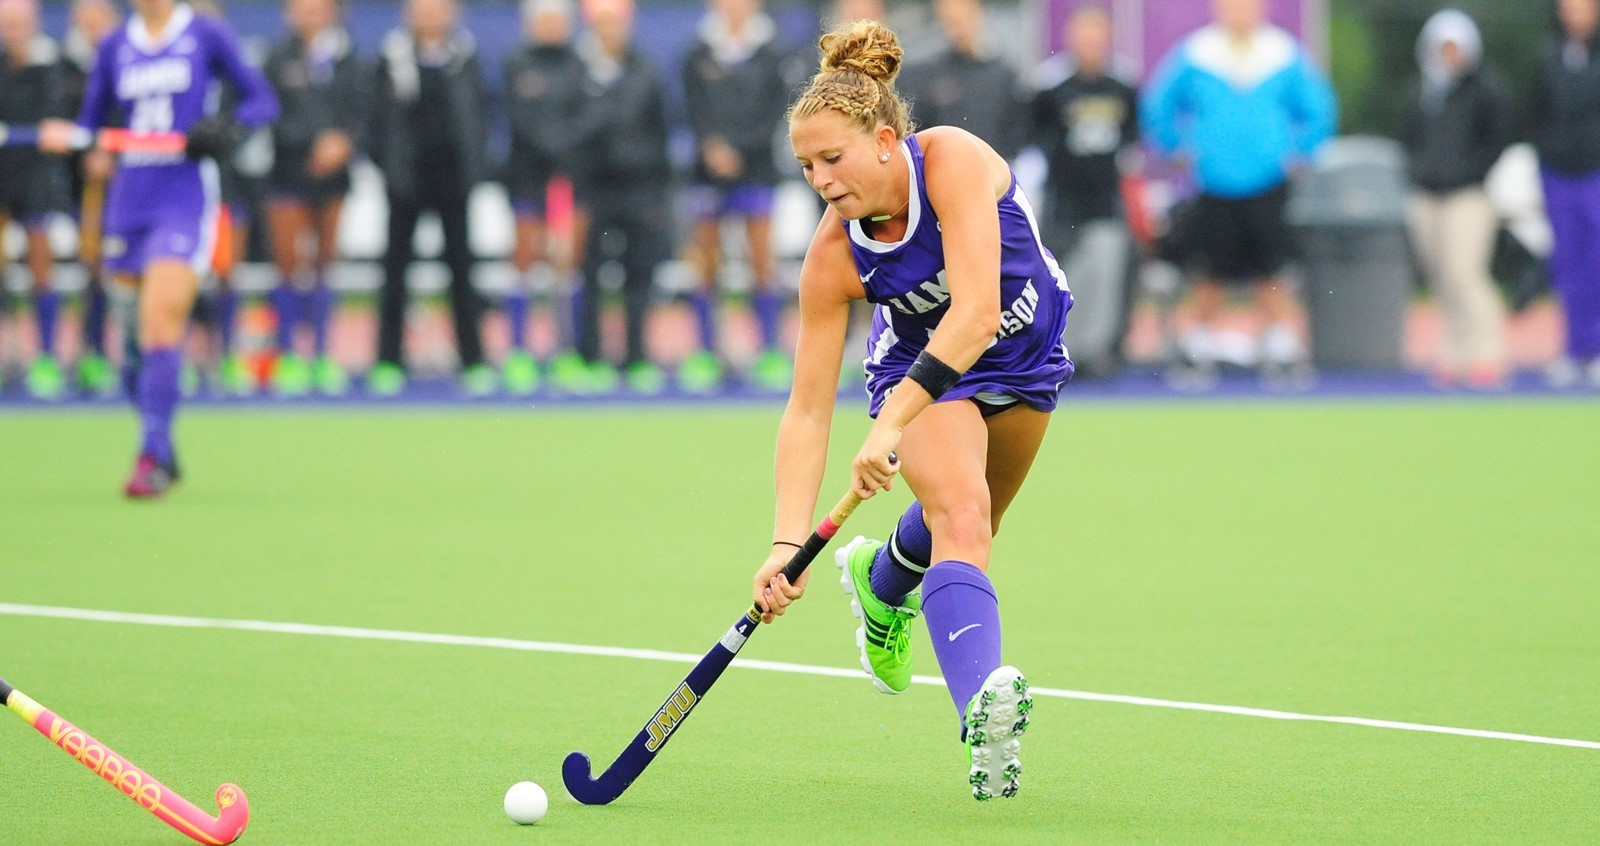 Field Hockey: West's Goal Powers No. 19 JMU to 2-1 Overtime Win at No. 13 Delaware